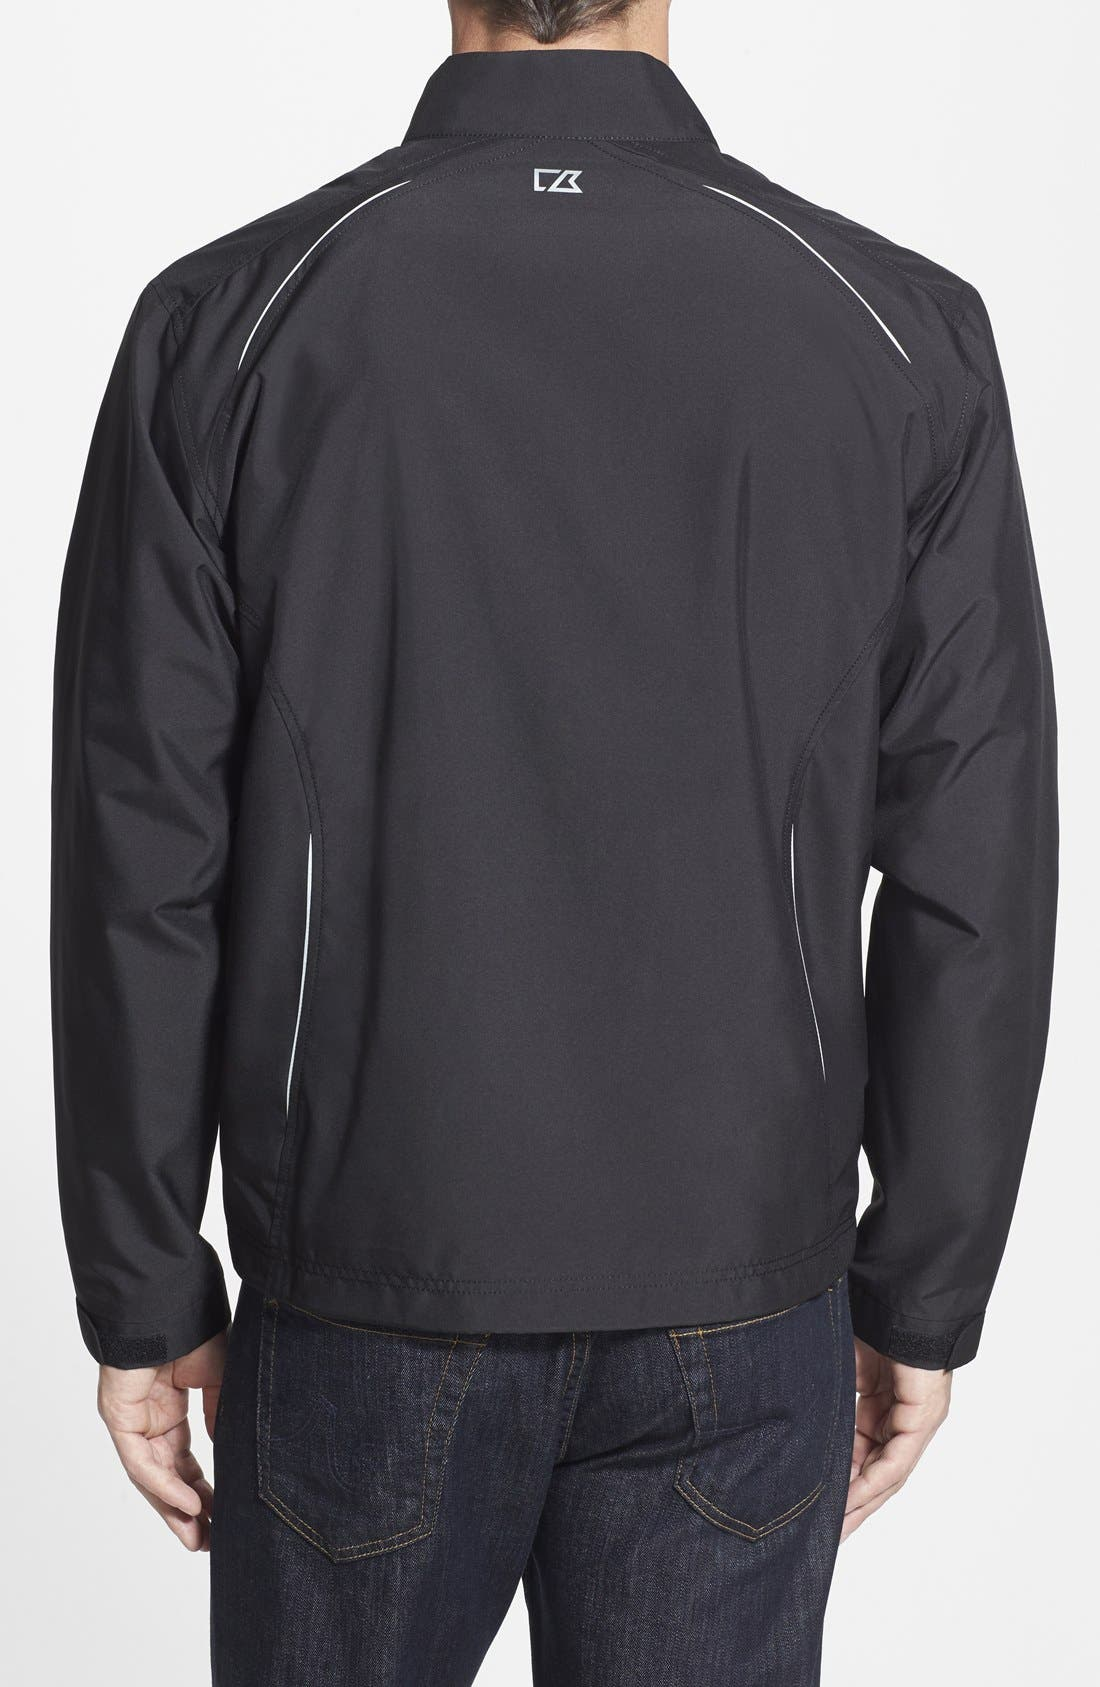 Carolina Panthers - Beacon WeatherTec Wind & Water Resistant Jacket,                             Alternate thumbnail 2, color,                             001